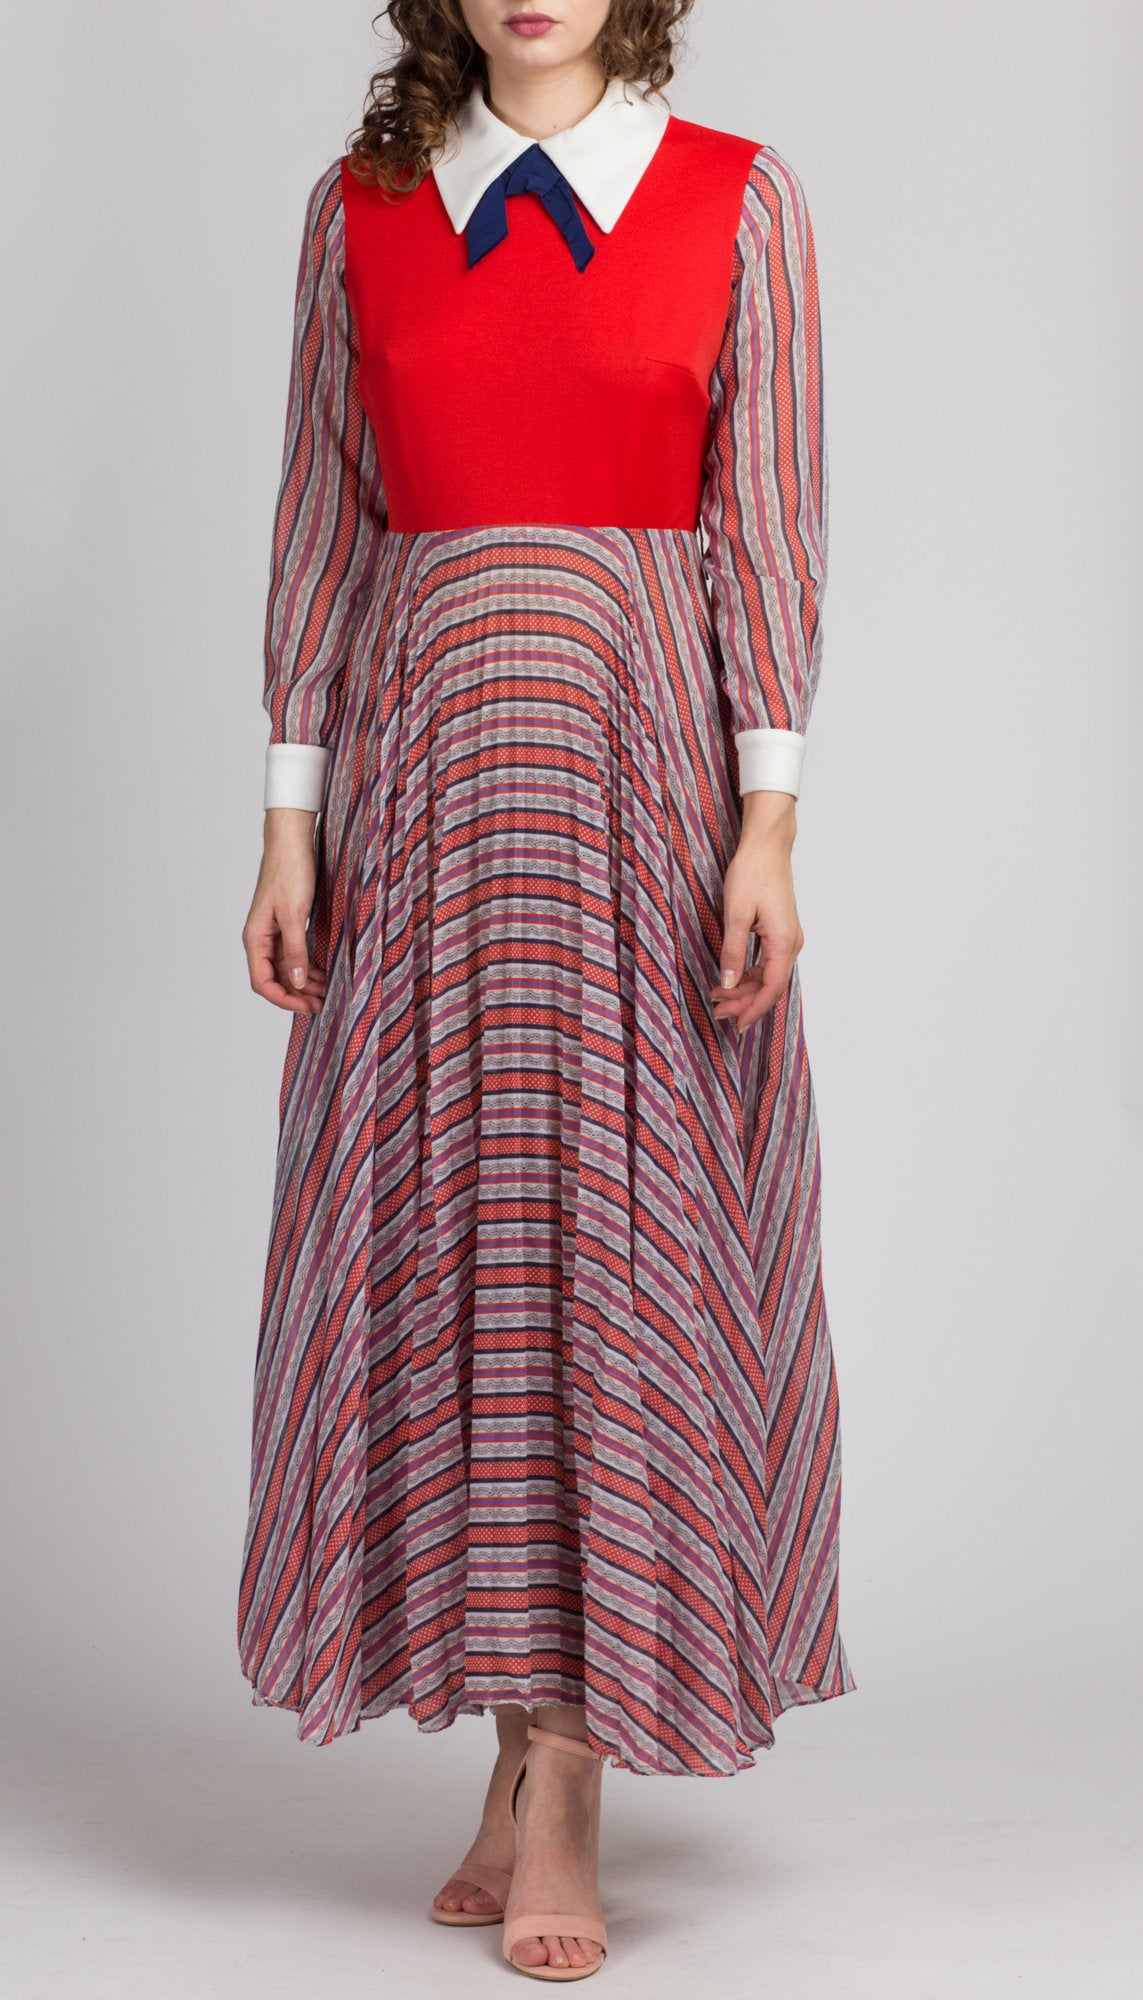 70s Mod Hostess Maxi Dress - Medium